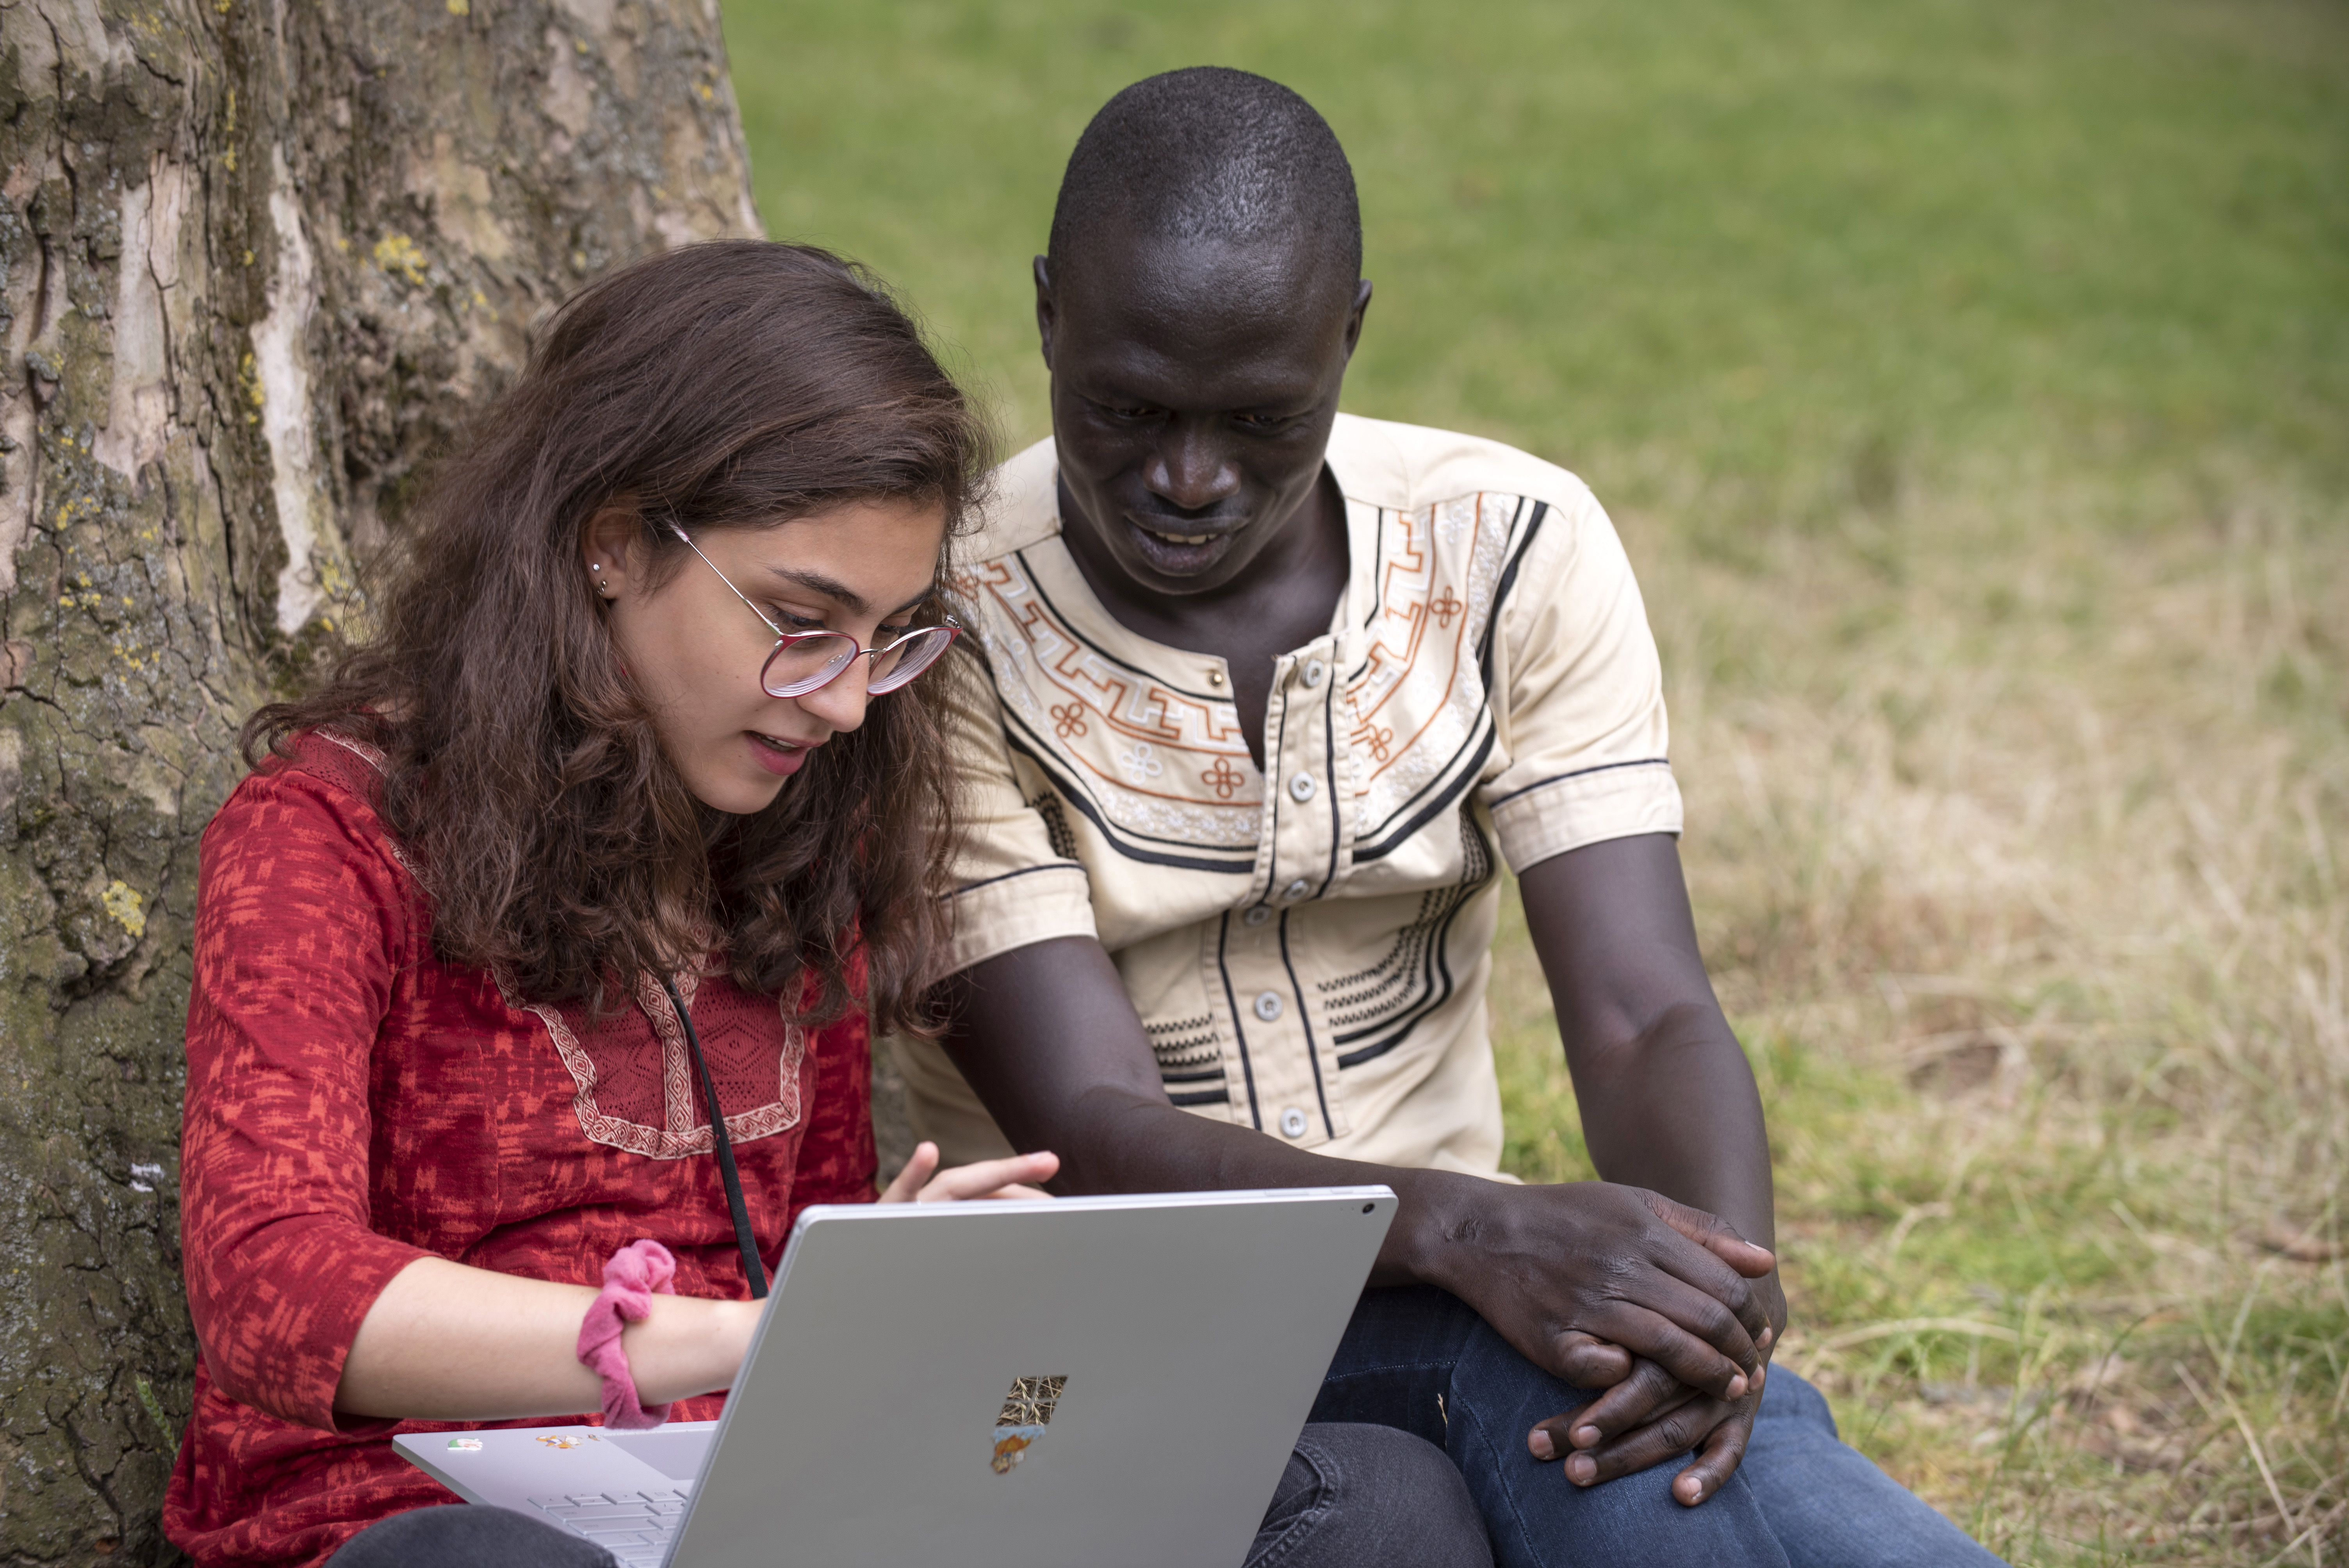 Two individuals looking at a laptop